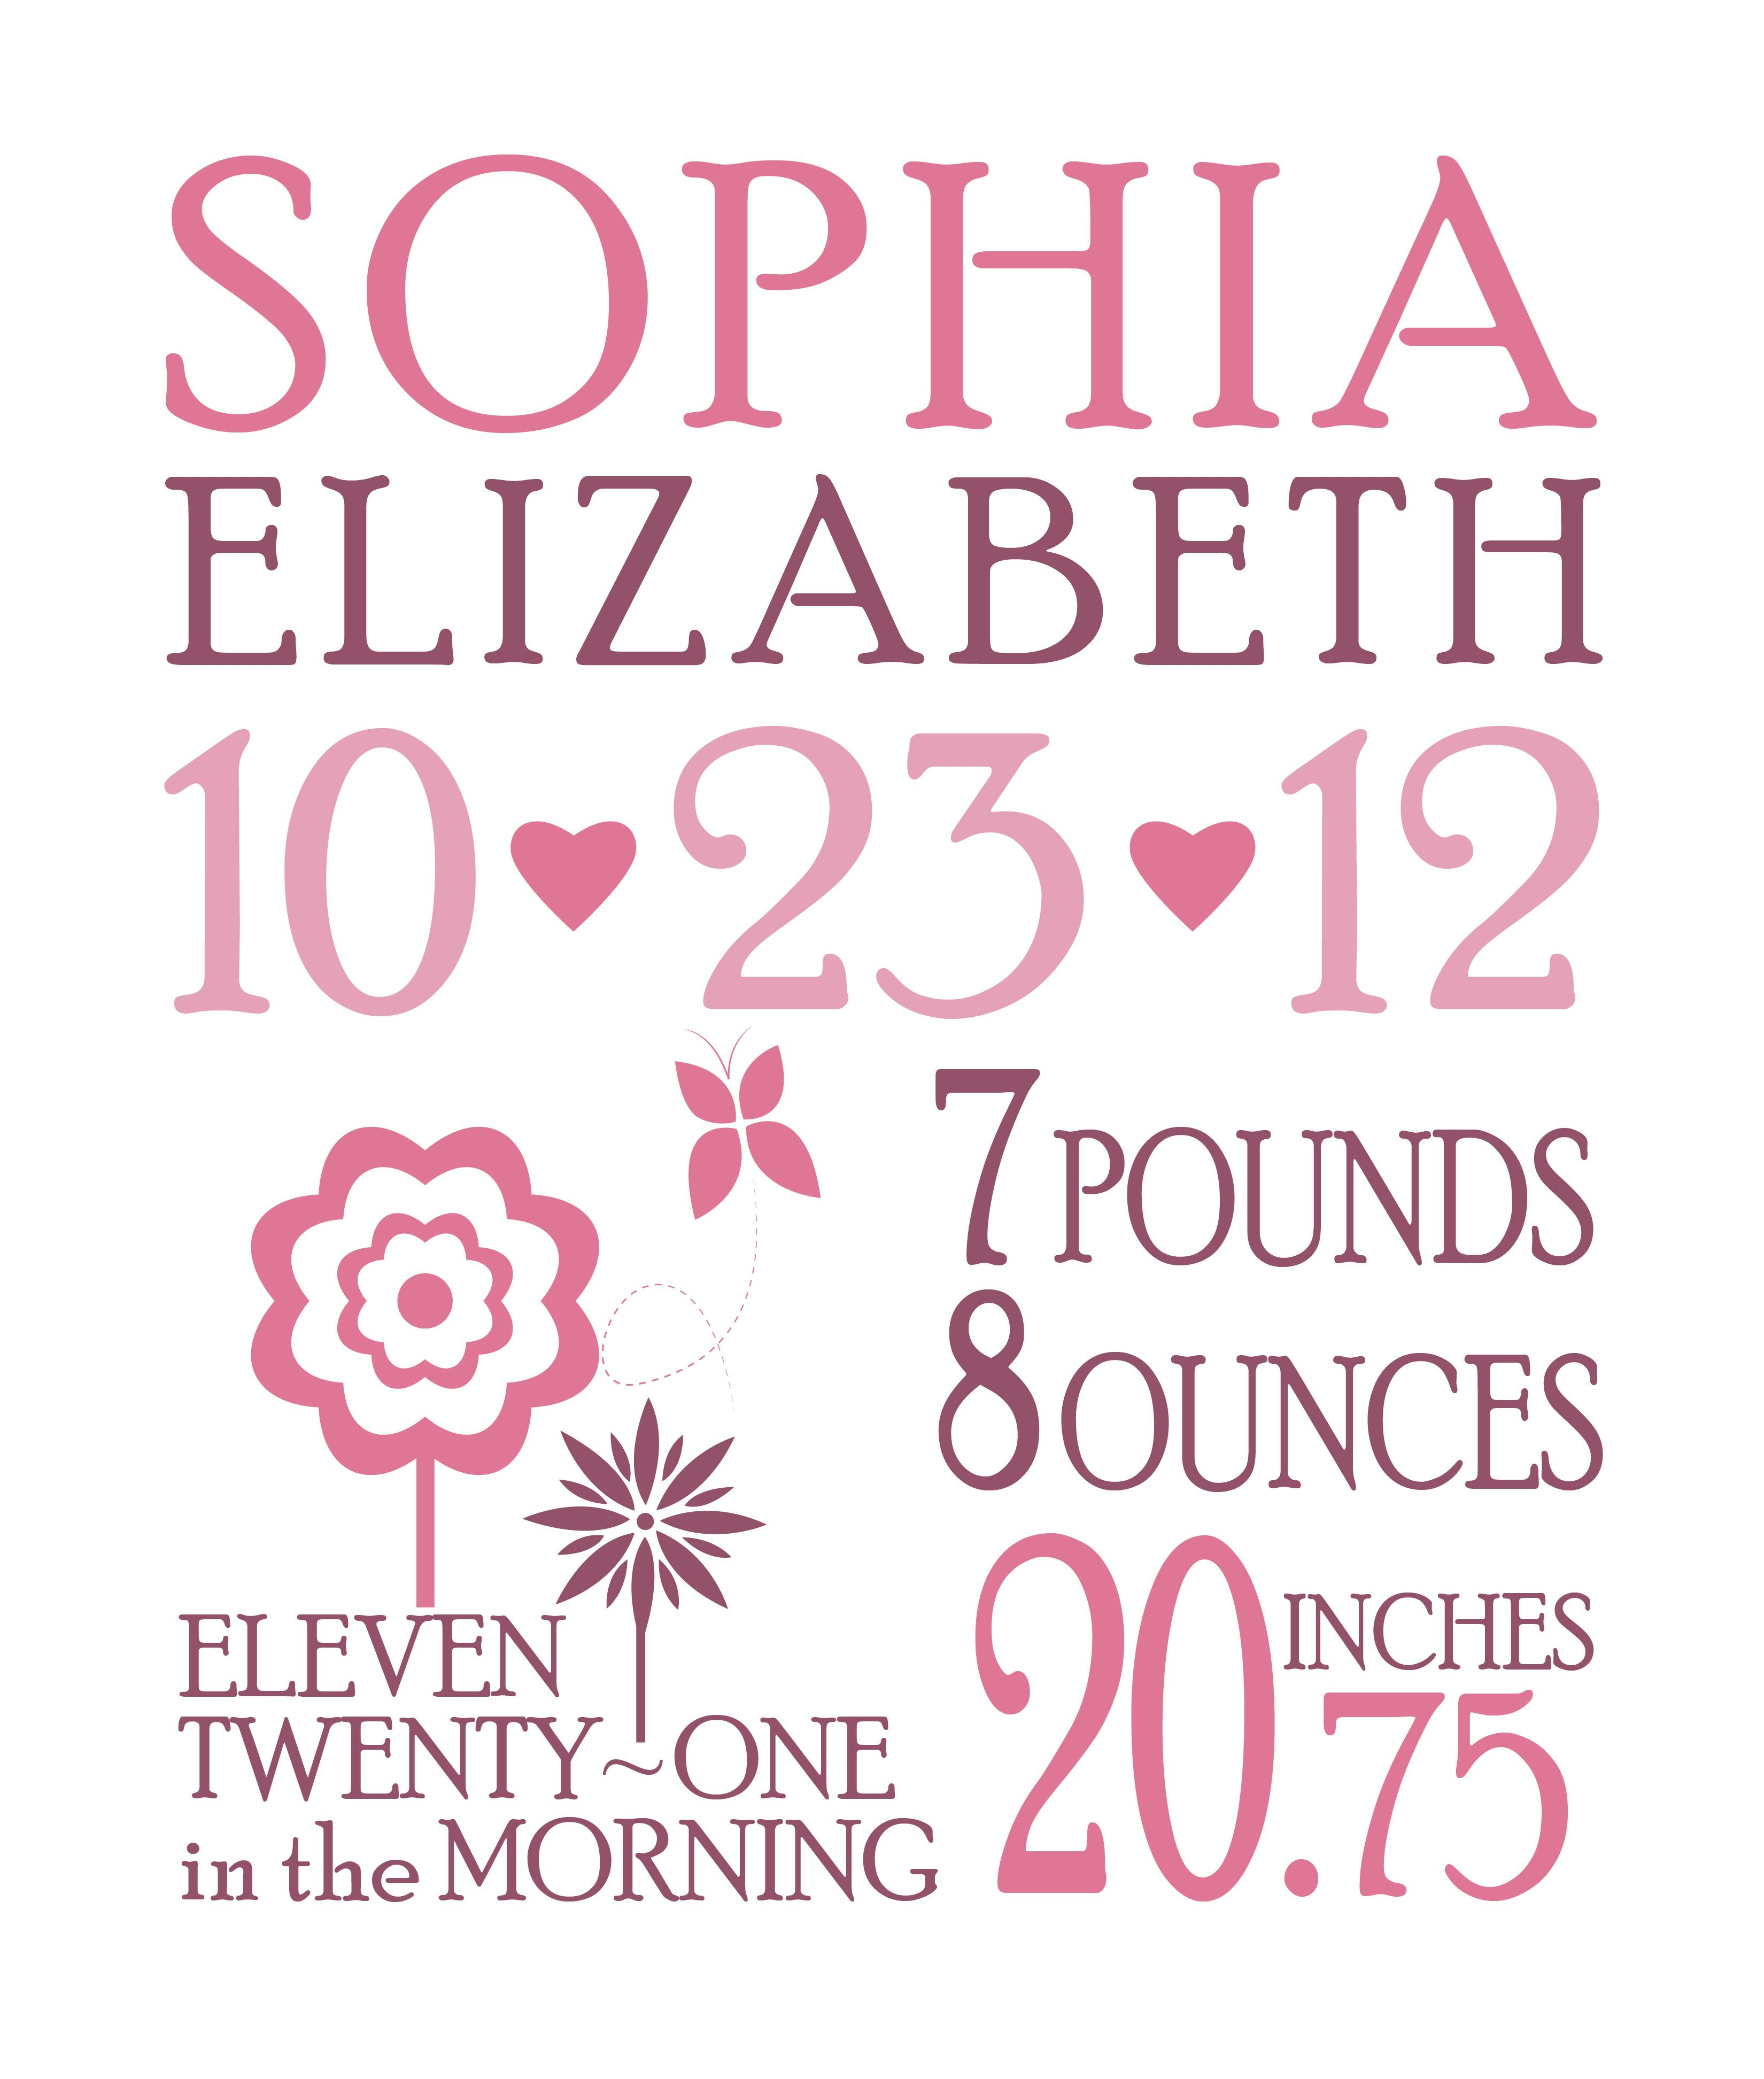 girl birth announcement totally customizable if interested email me at infojfdesignz